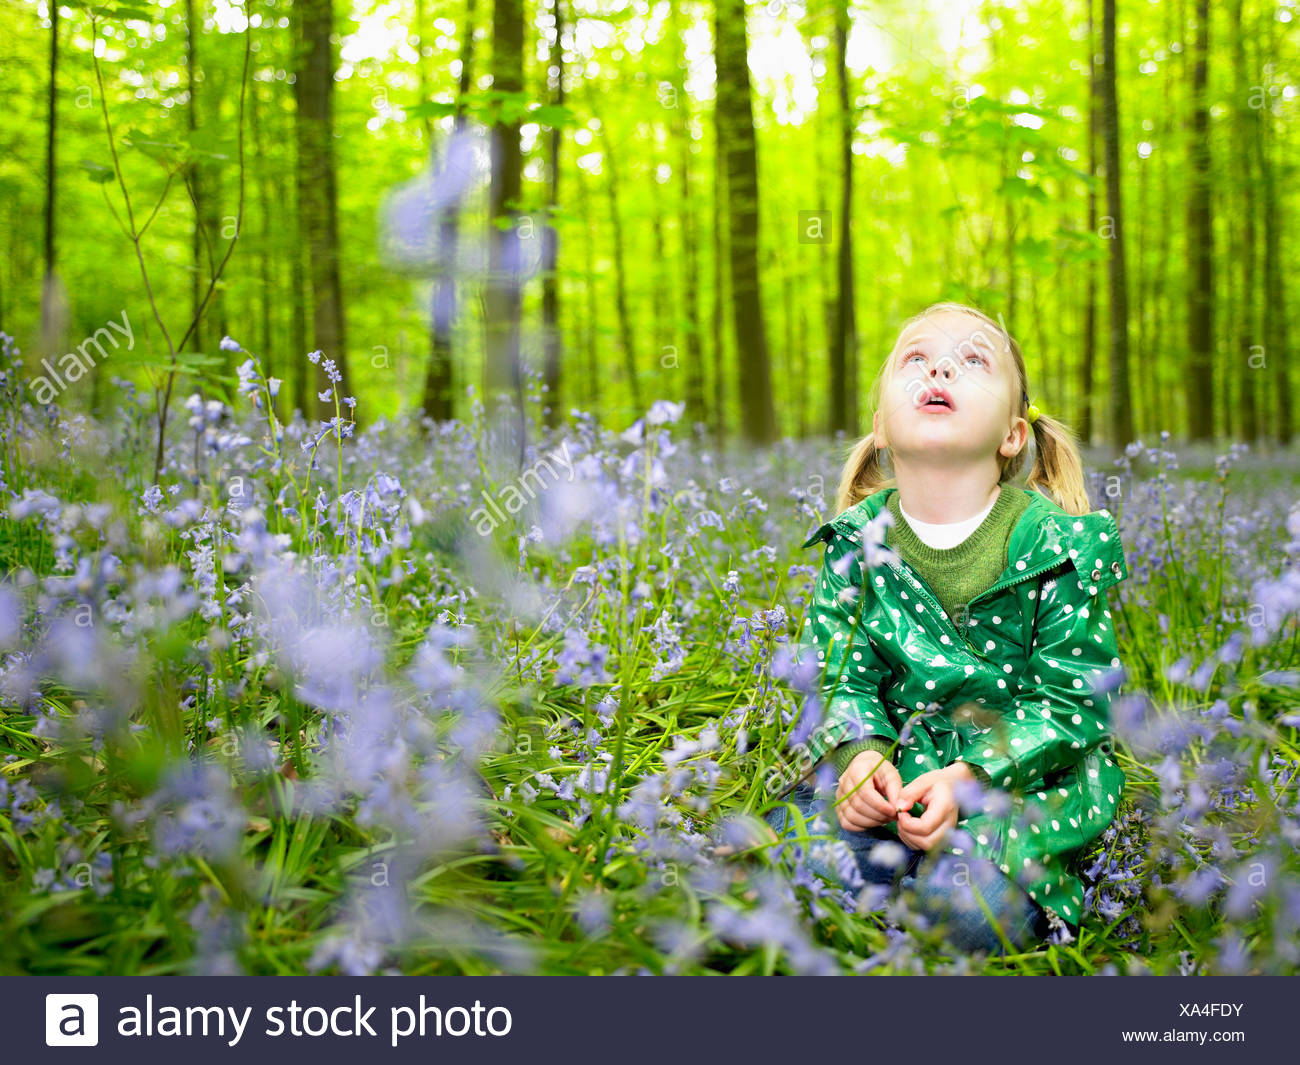 Girl looking up, in the woods Stock Photo